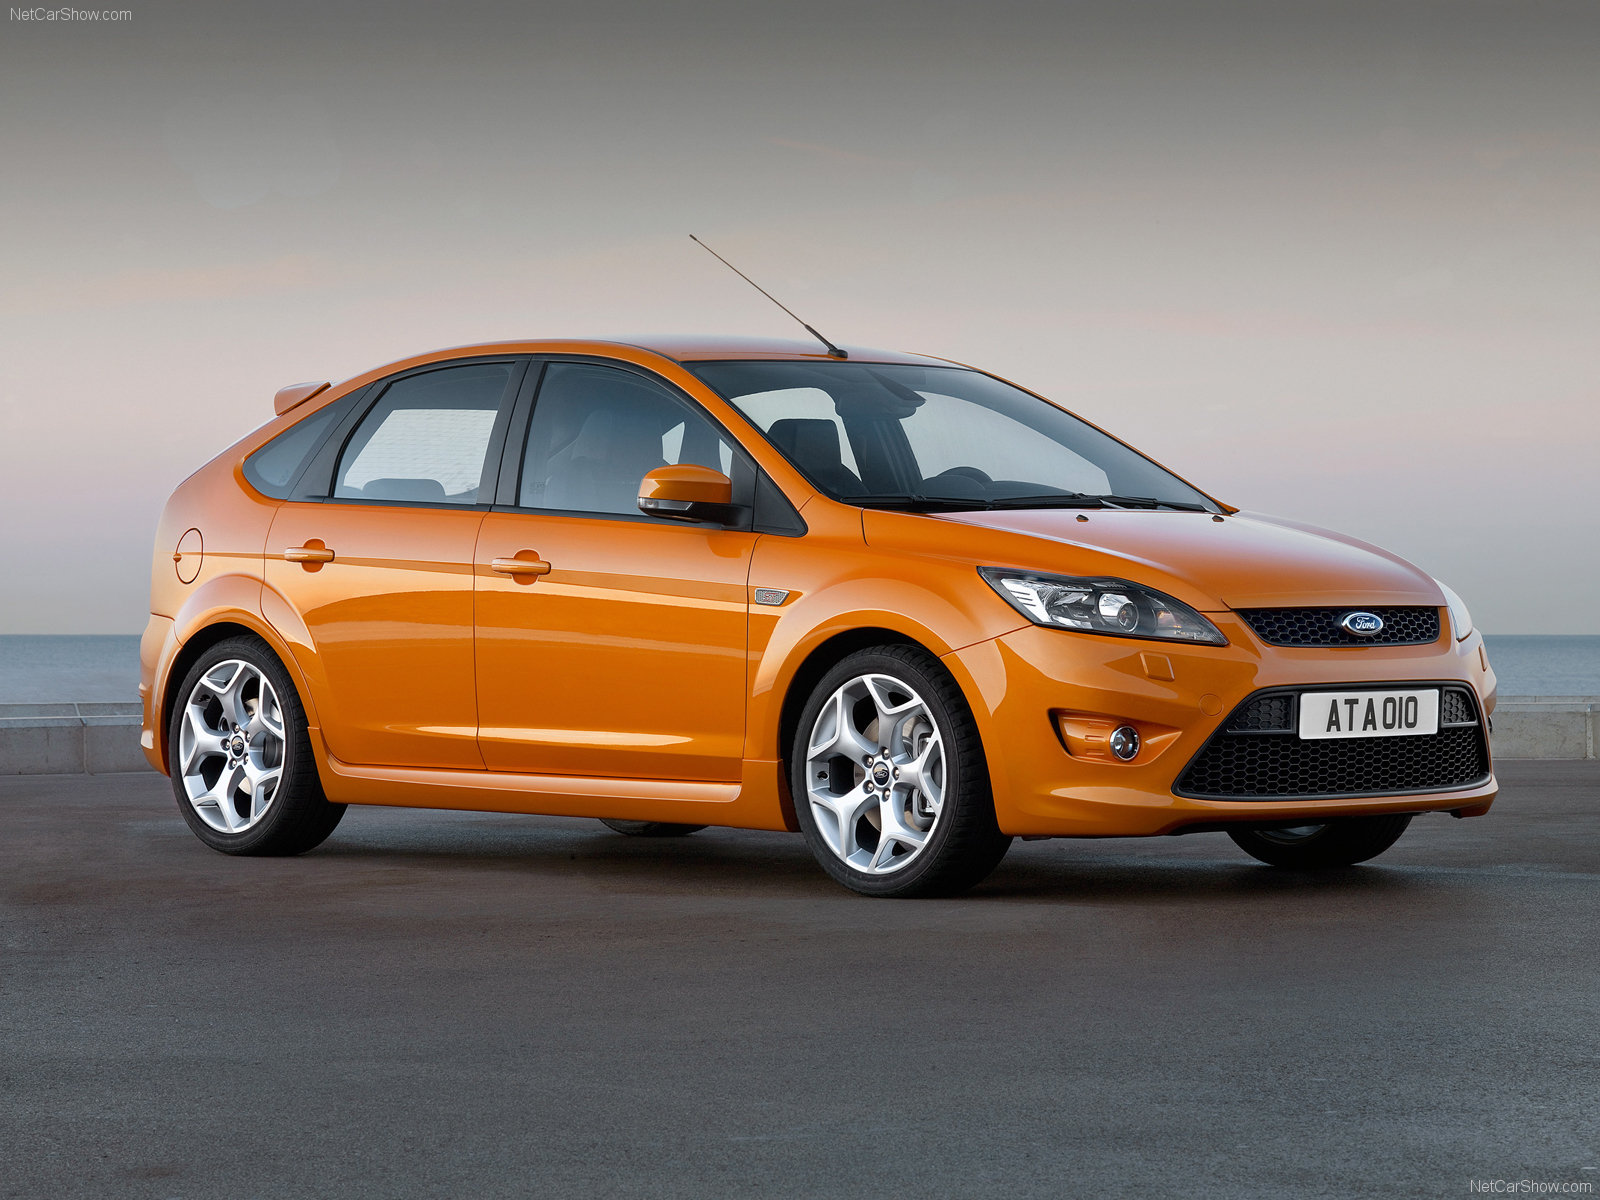 Ford Focus Images: